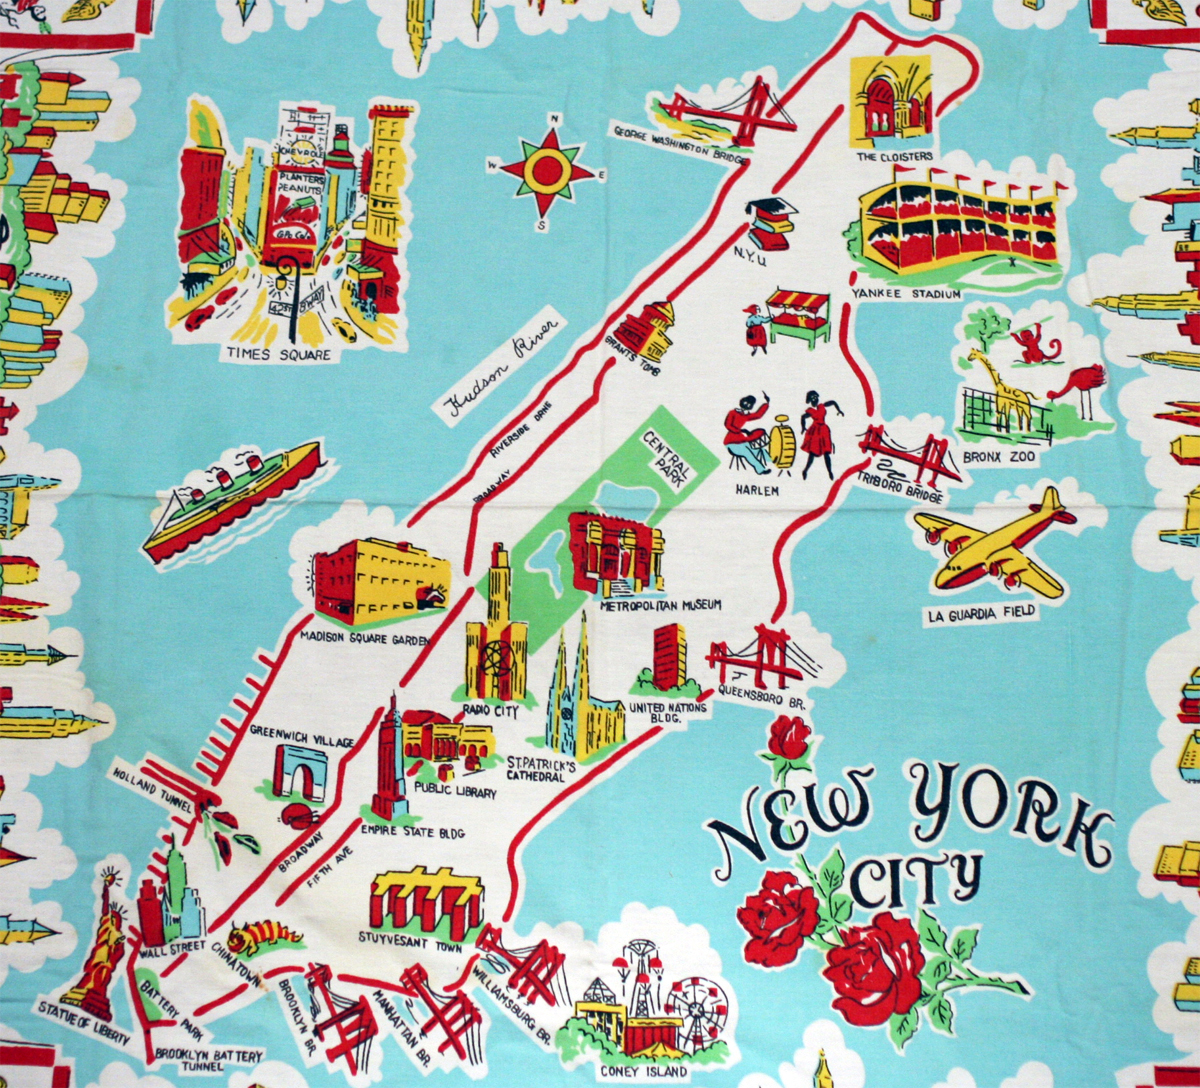 Tourist Map Of New York.Large Illustrated Tourist Map Of New York City New York Usa